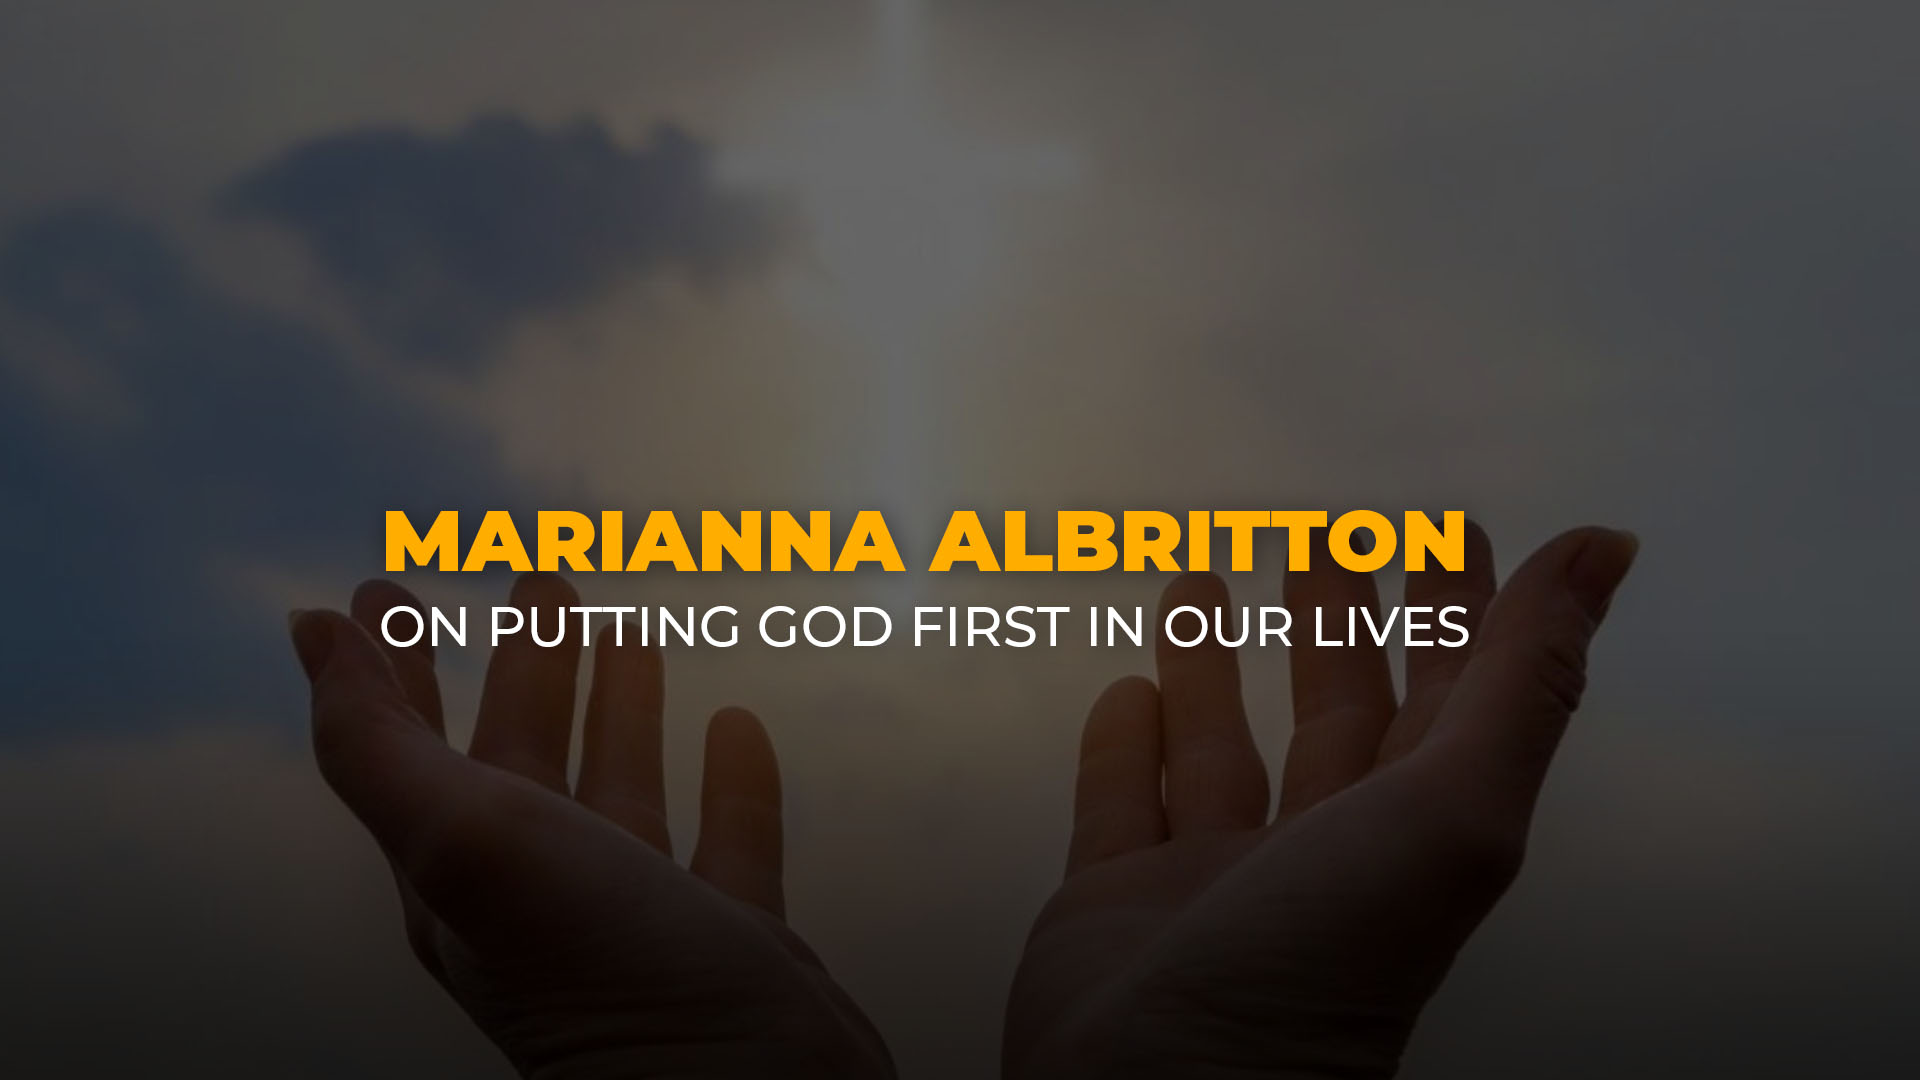 Marianna Albritton on Putting God First in Our Lives banner